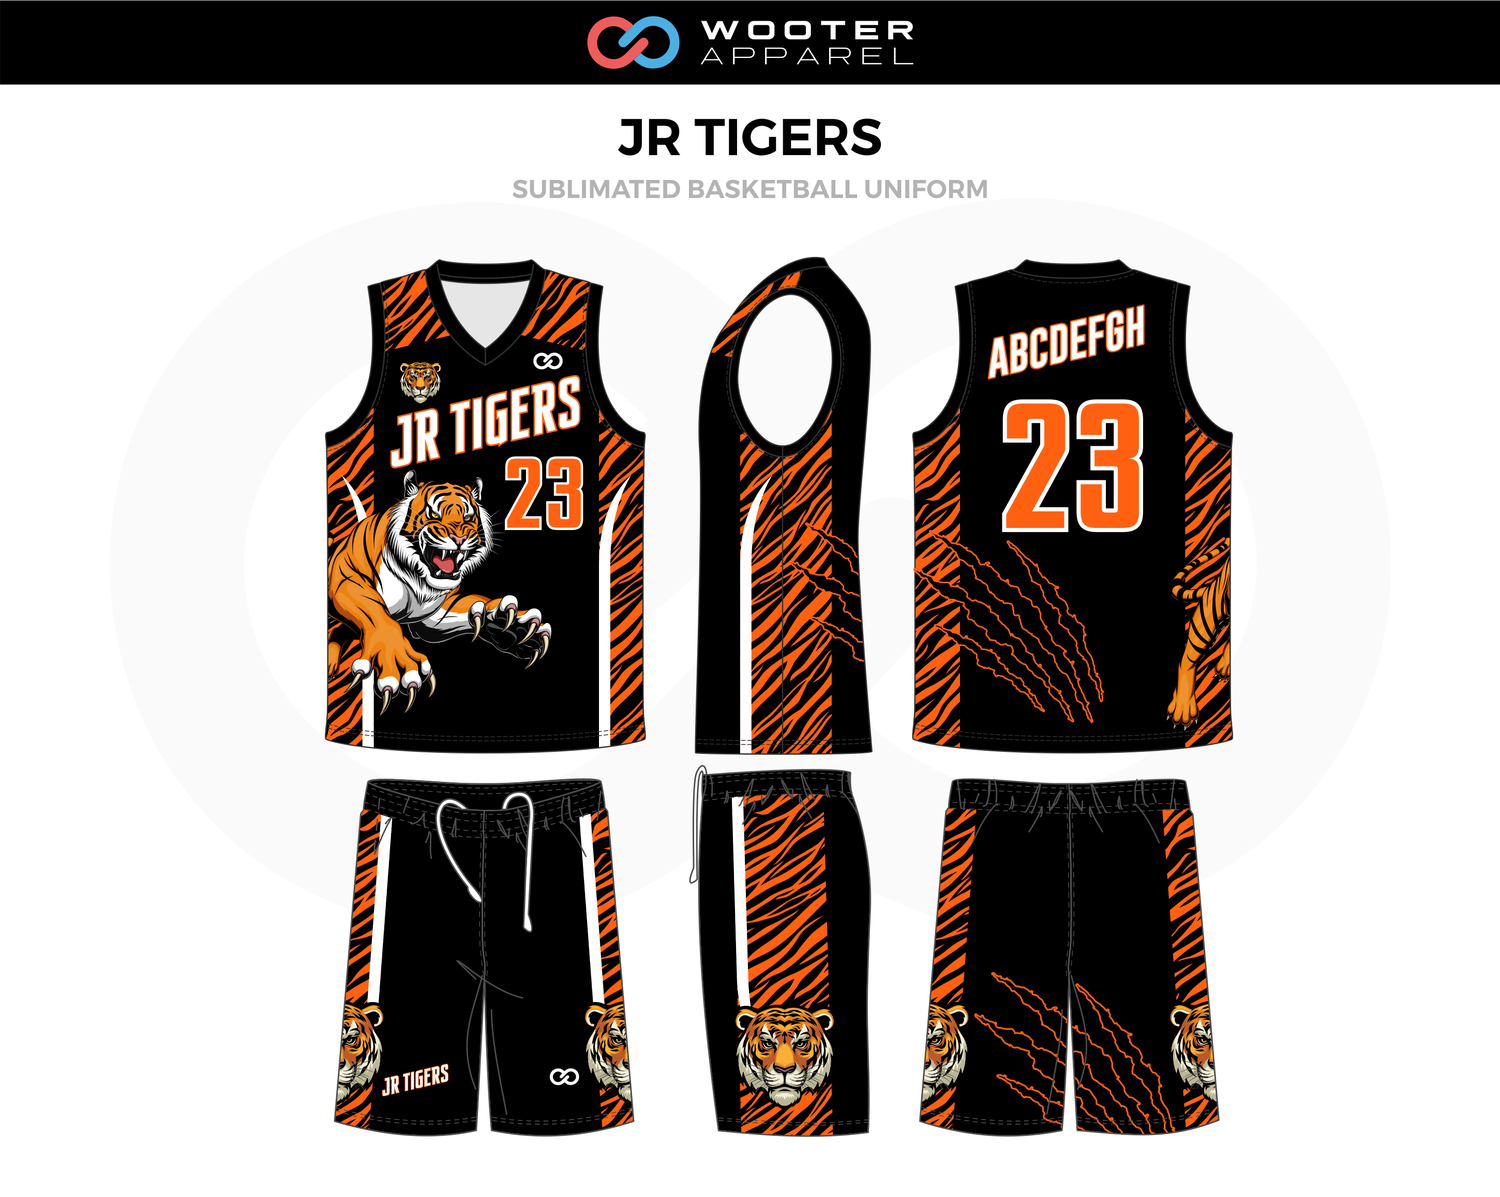 Wooter Apparel Blog Wooter Apparel In 2020 Basketball Uniforms Design Basketball Uniforms Jersey Design